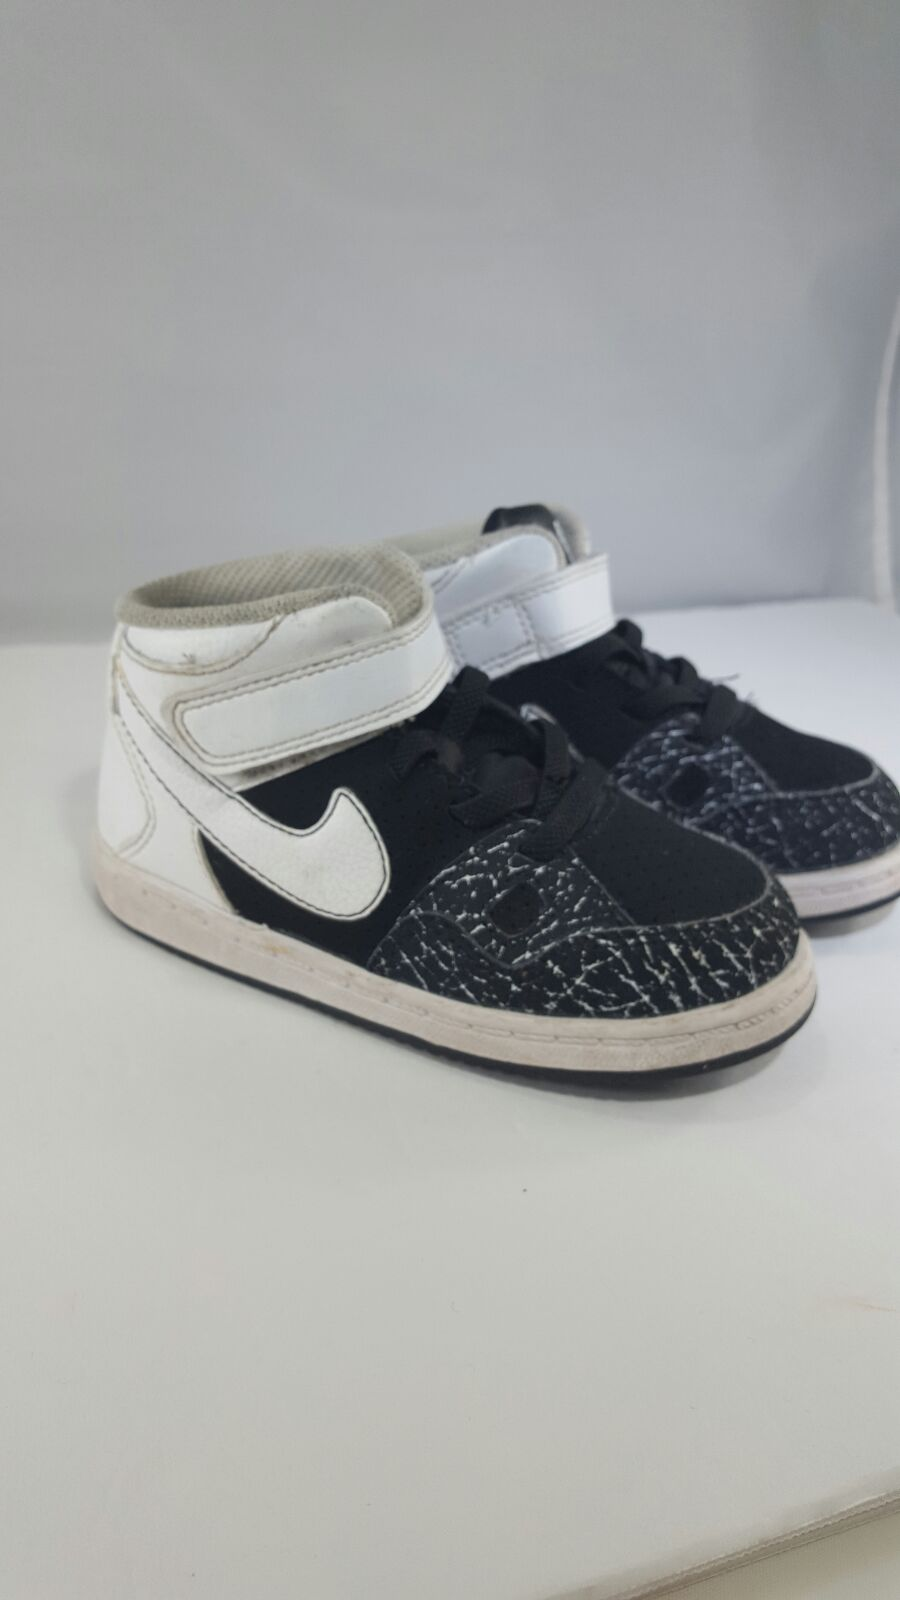 nike 8c. nike shoes for kids size 8c r